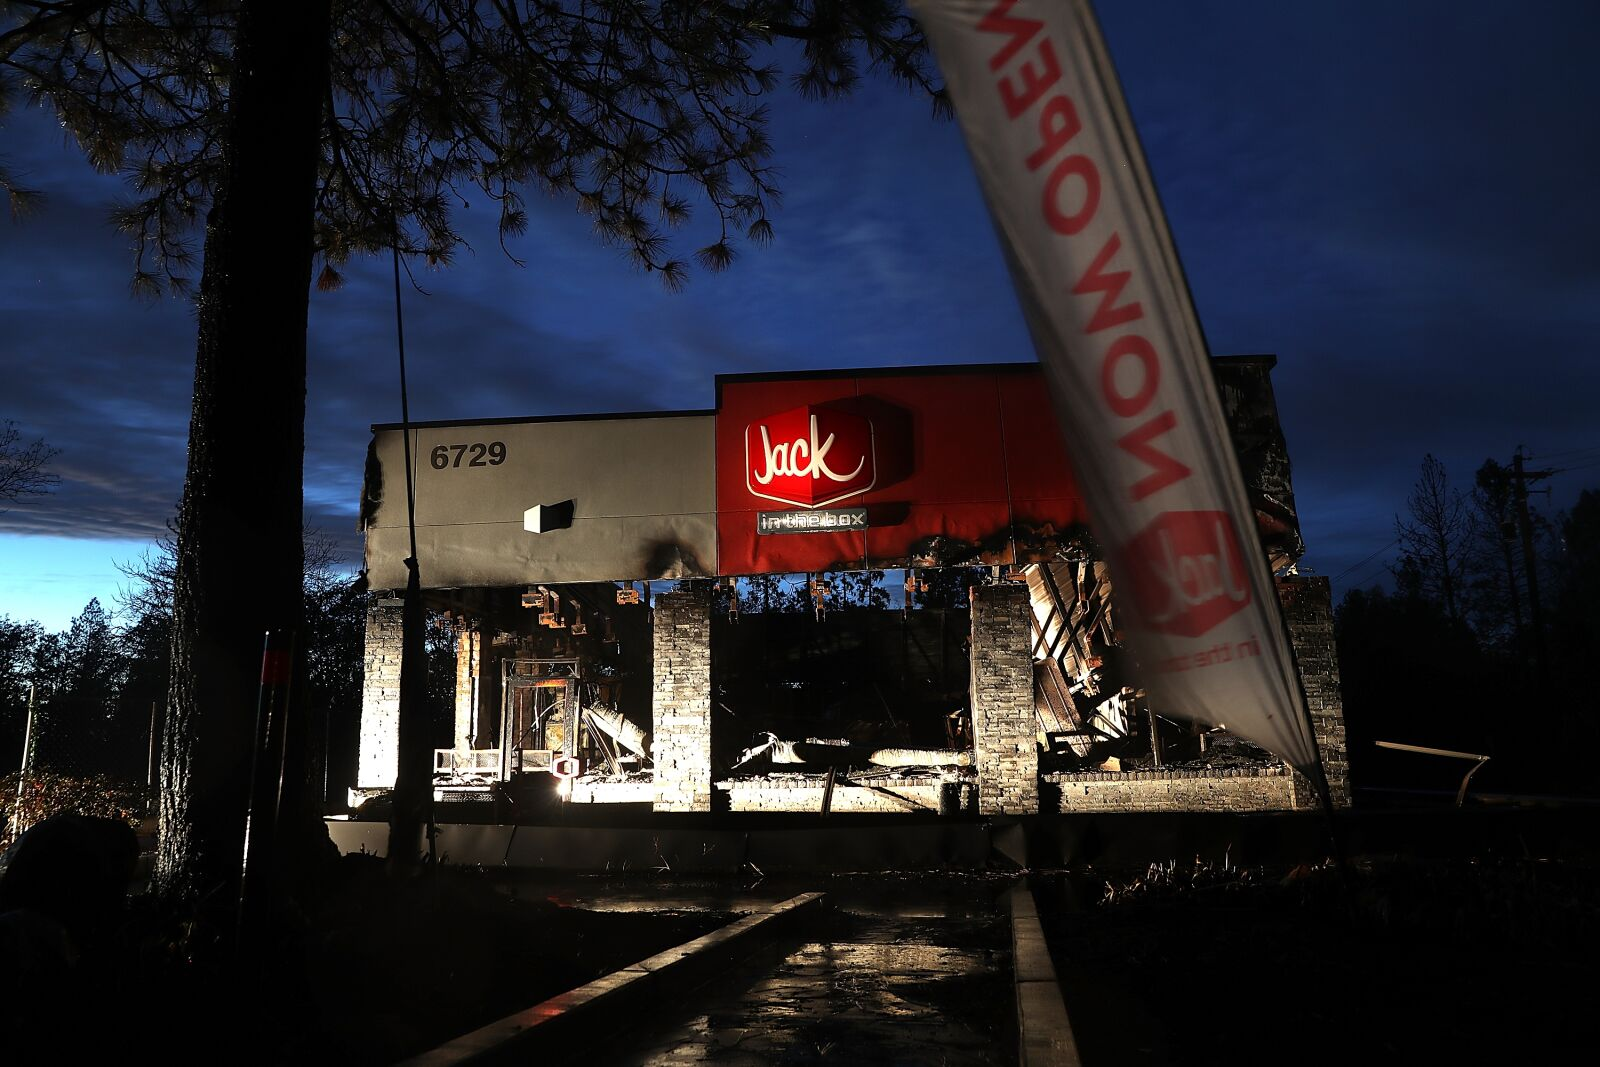 Jack in the Box: 2 for 99¢ tacos are officially back